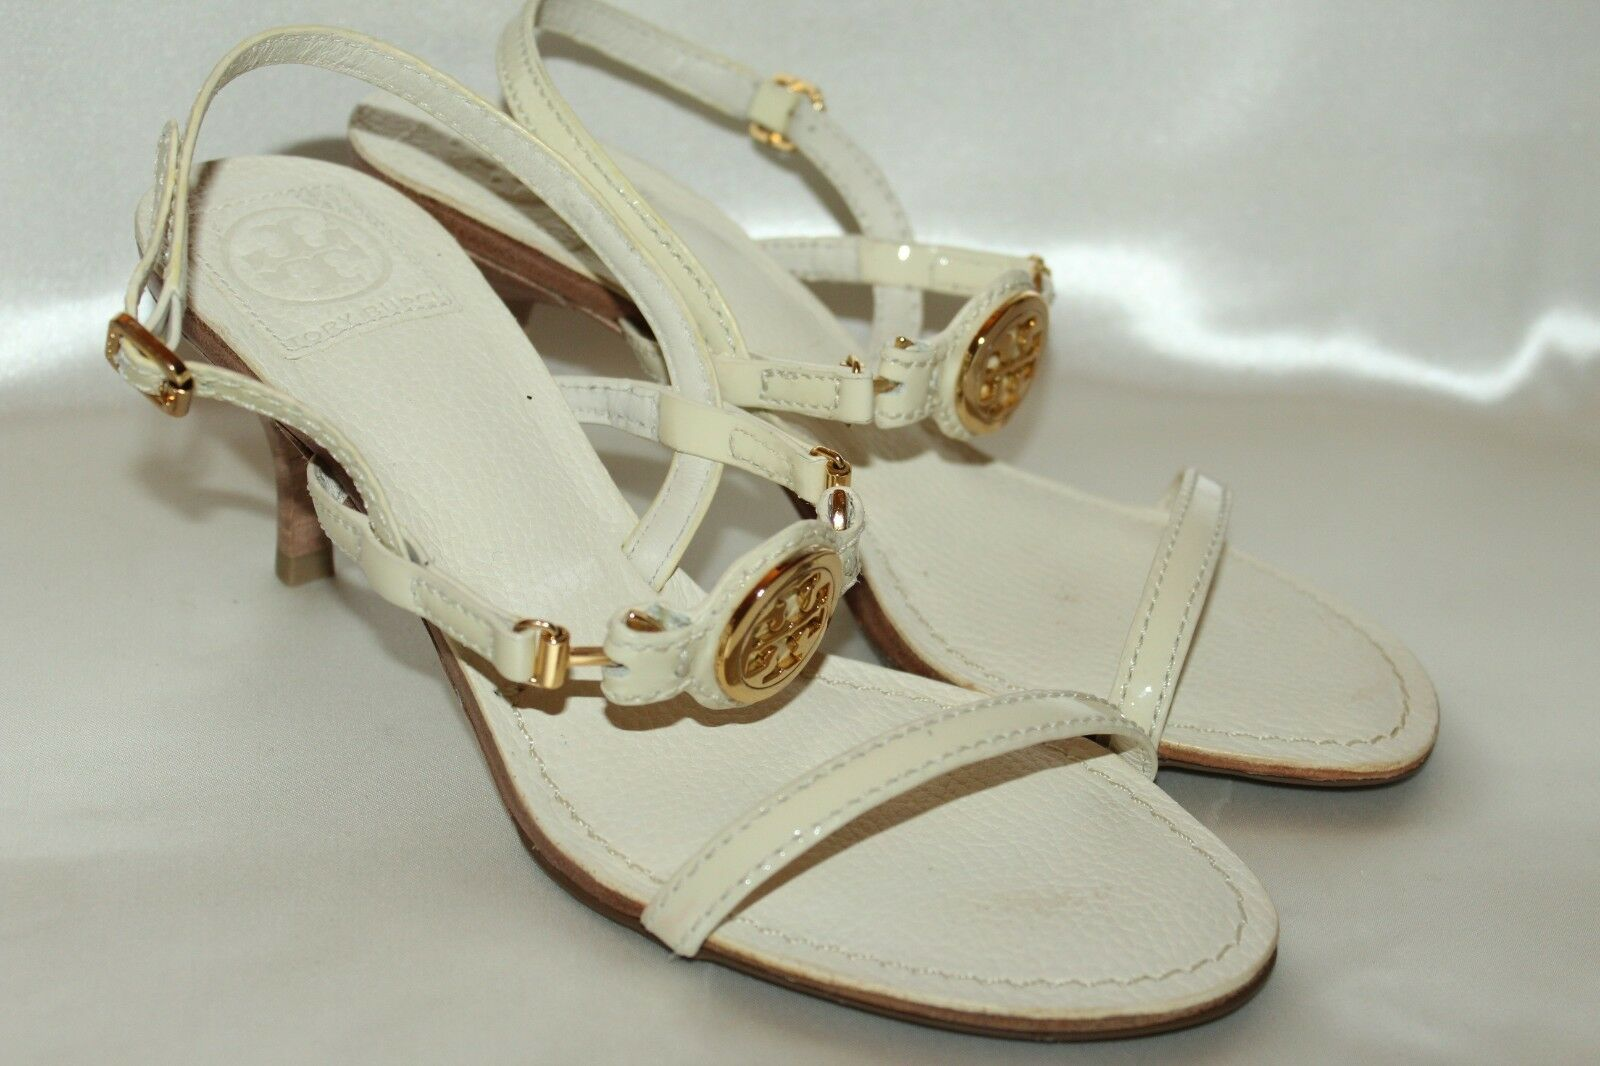 NEW TORY BURCH Ivory Patent Leather InGrüned T Emblem Open Toe Heels Sandals 7